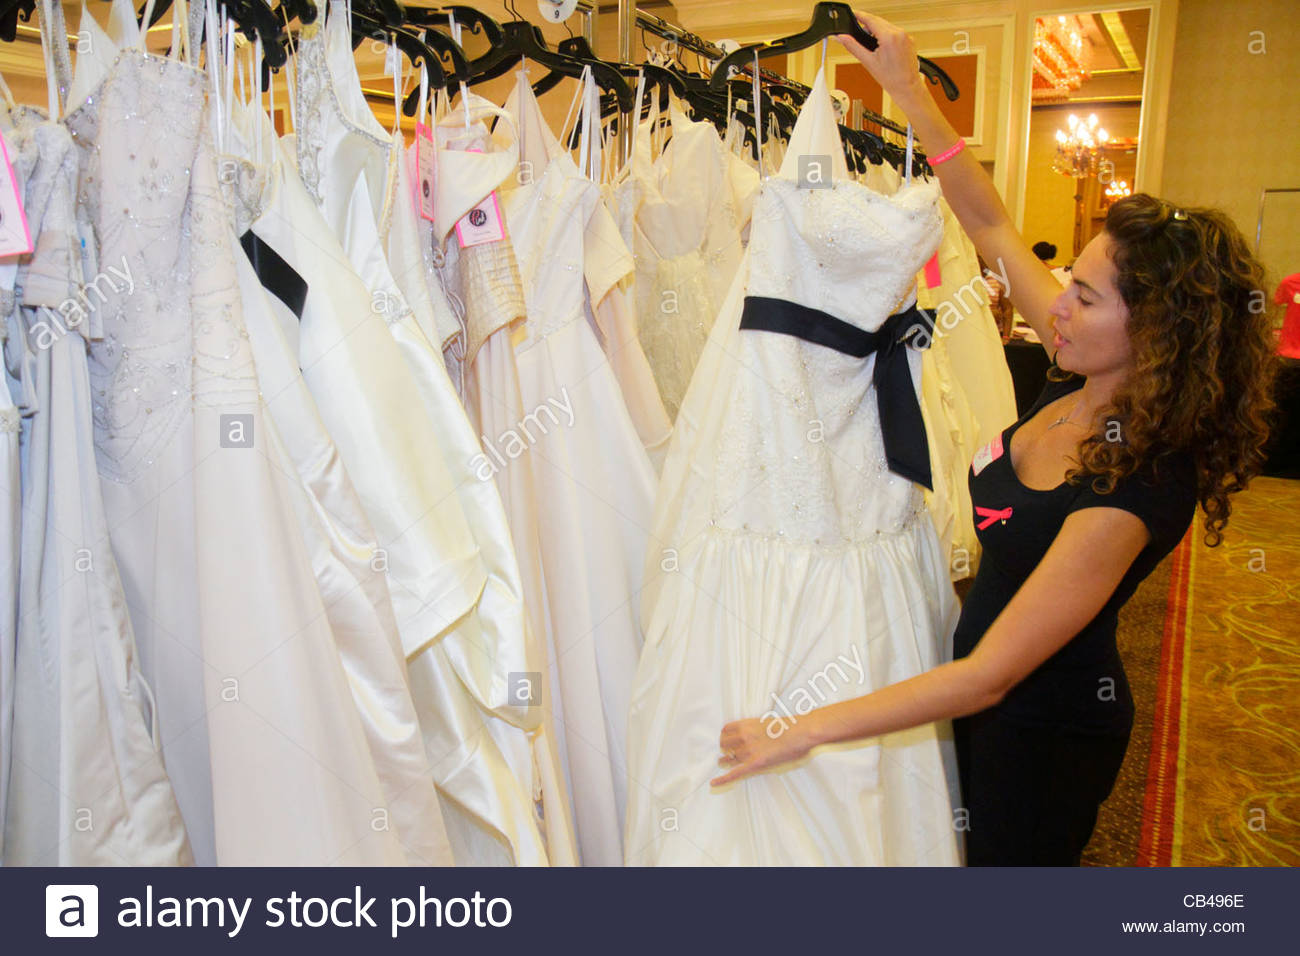 Dresses For Sale Stockfotos & Dresses For Sale Bilder - Alamy